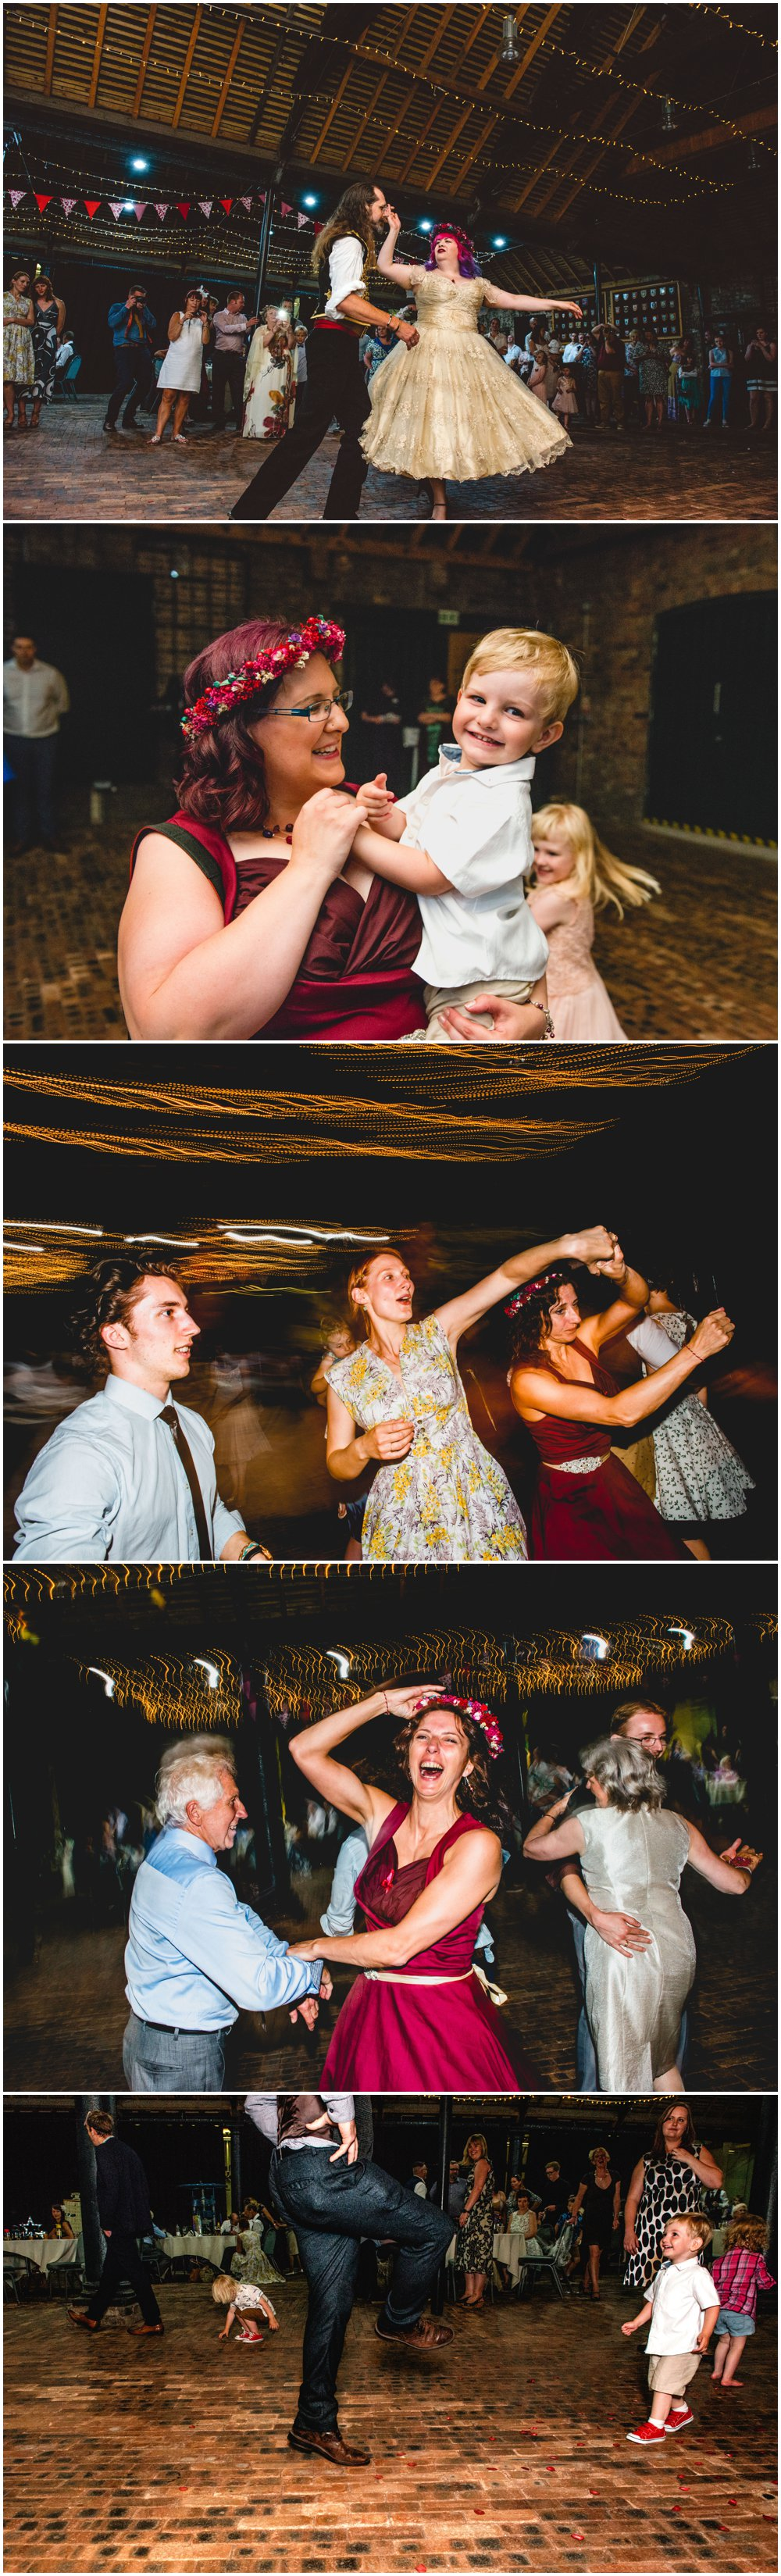 Fay and Michael - Alternative, Carnival, re-enactment themed, pink and maroon wedding at Enginuity Museum in Ironbridge, Telford by West Midlands and Birmingham based alternative wedding photographer Lisa Carpenter Photography, ceilidh